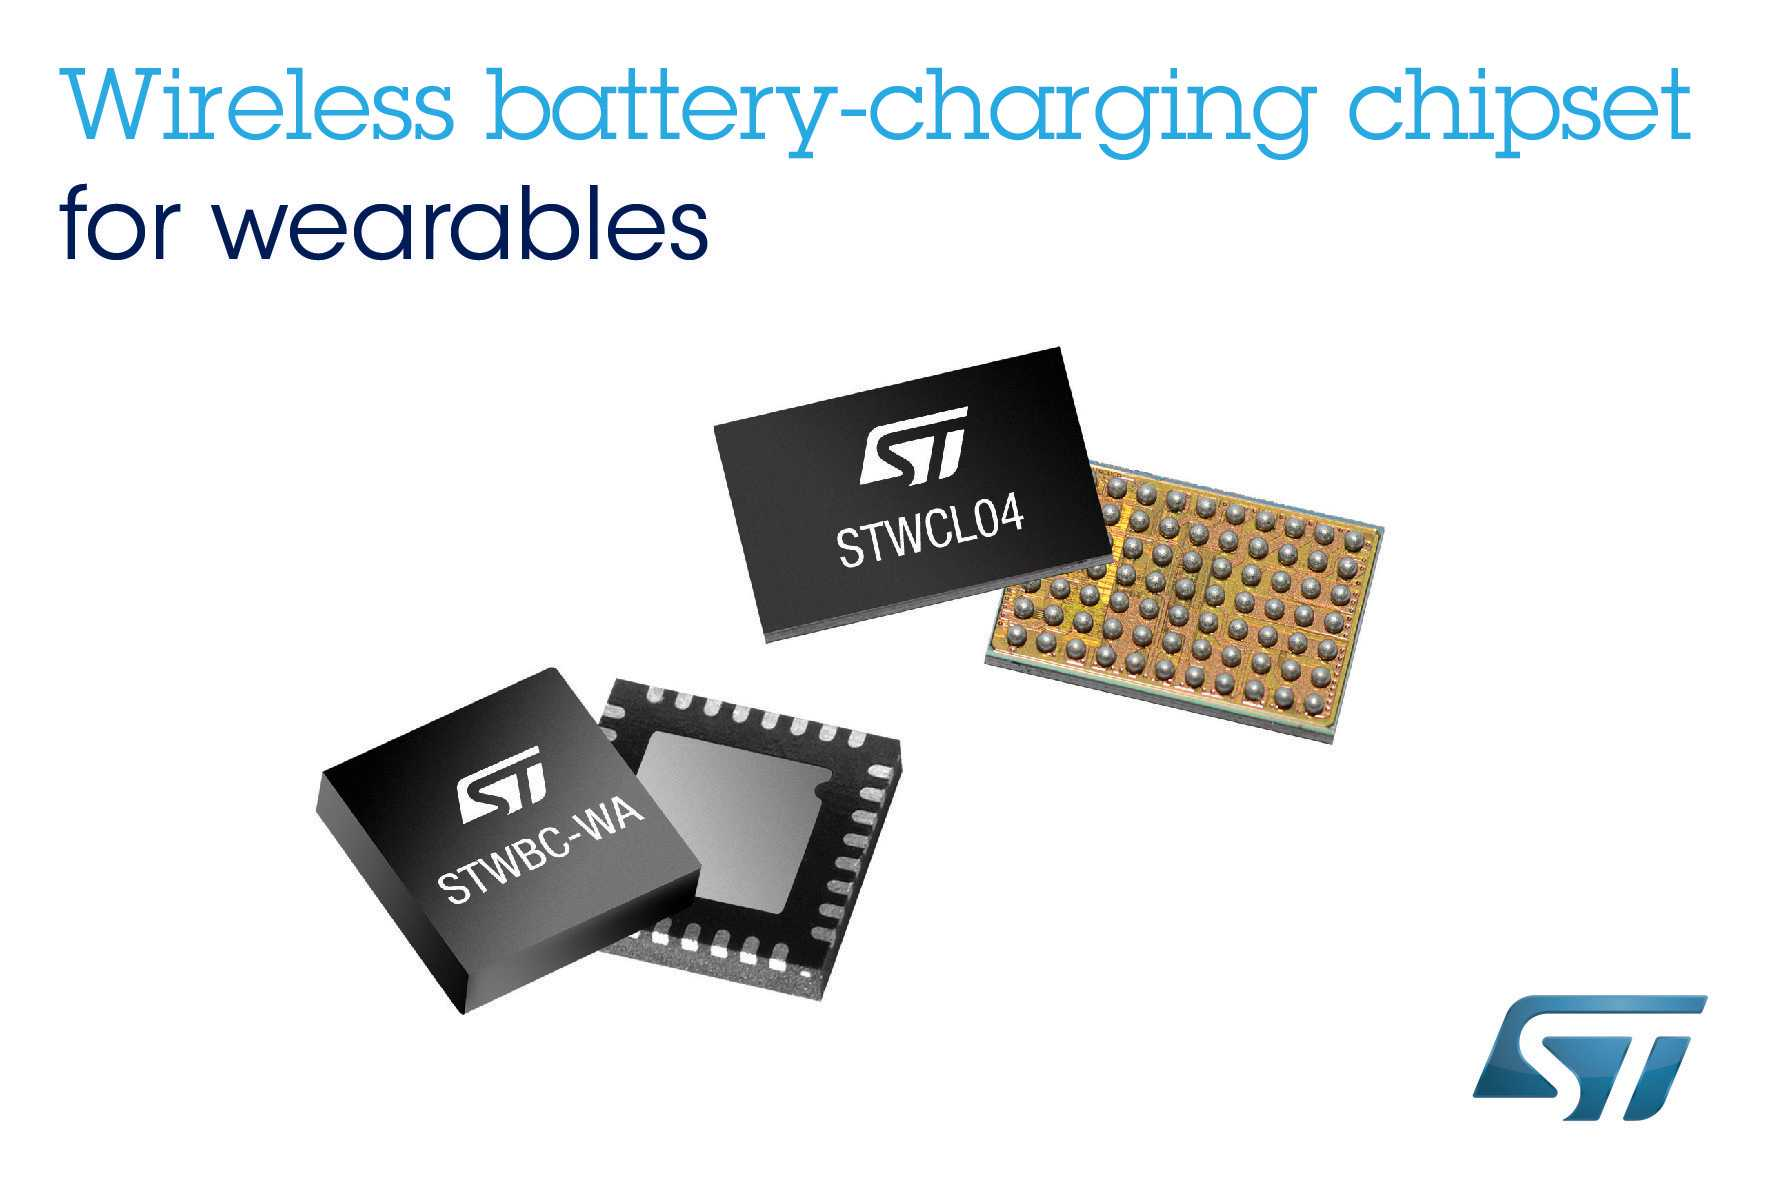 The fully-featured chipset supports wireless-charging for Li-ion or Li-polymer battery chemistries and includes safety mechanisms such as Foreign-Object Detection (FOD), active transmitter-presence detection, and receiver thermal protection.